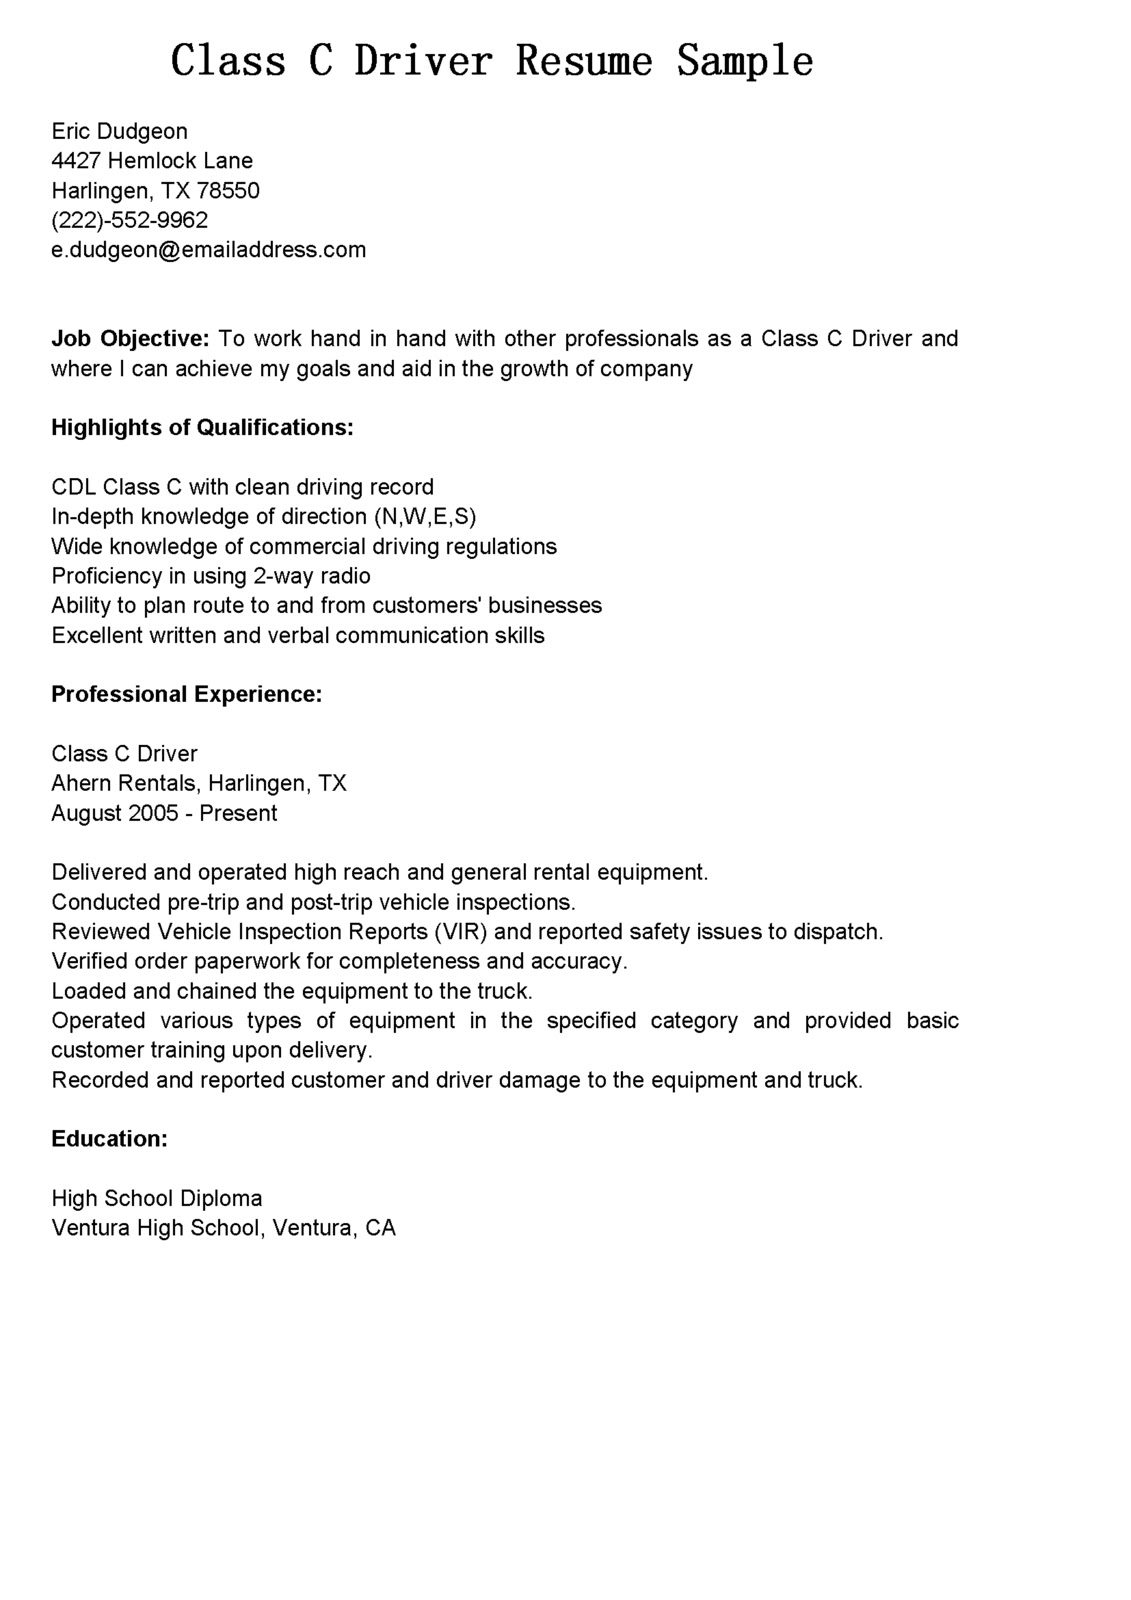 Class B Truck Driver Cover Letter   Resume Template Tow Truck Driver ...